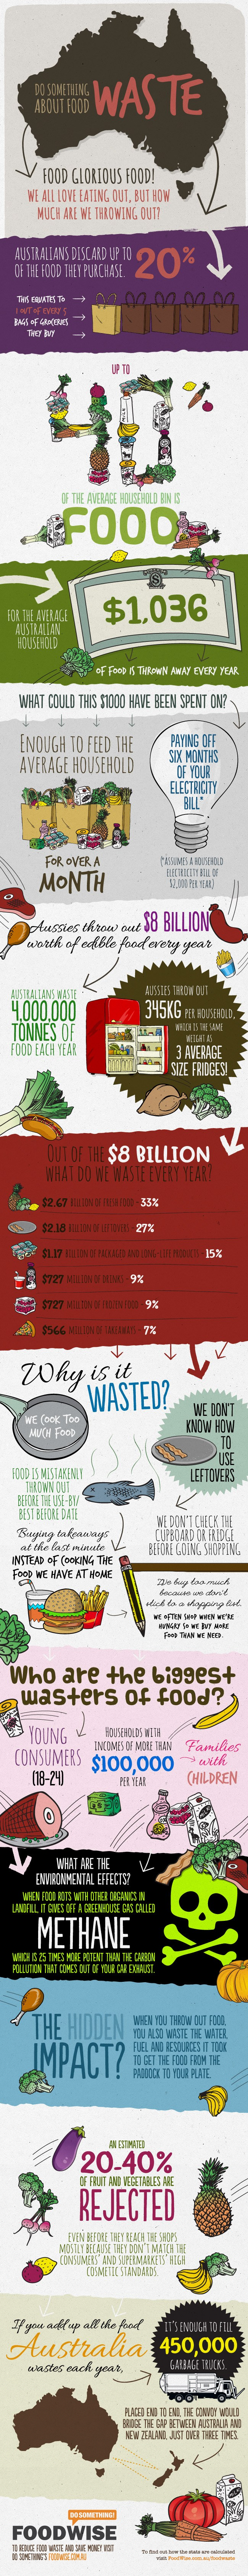 foodwaste-infographic2